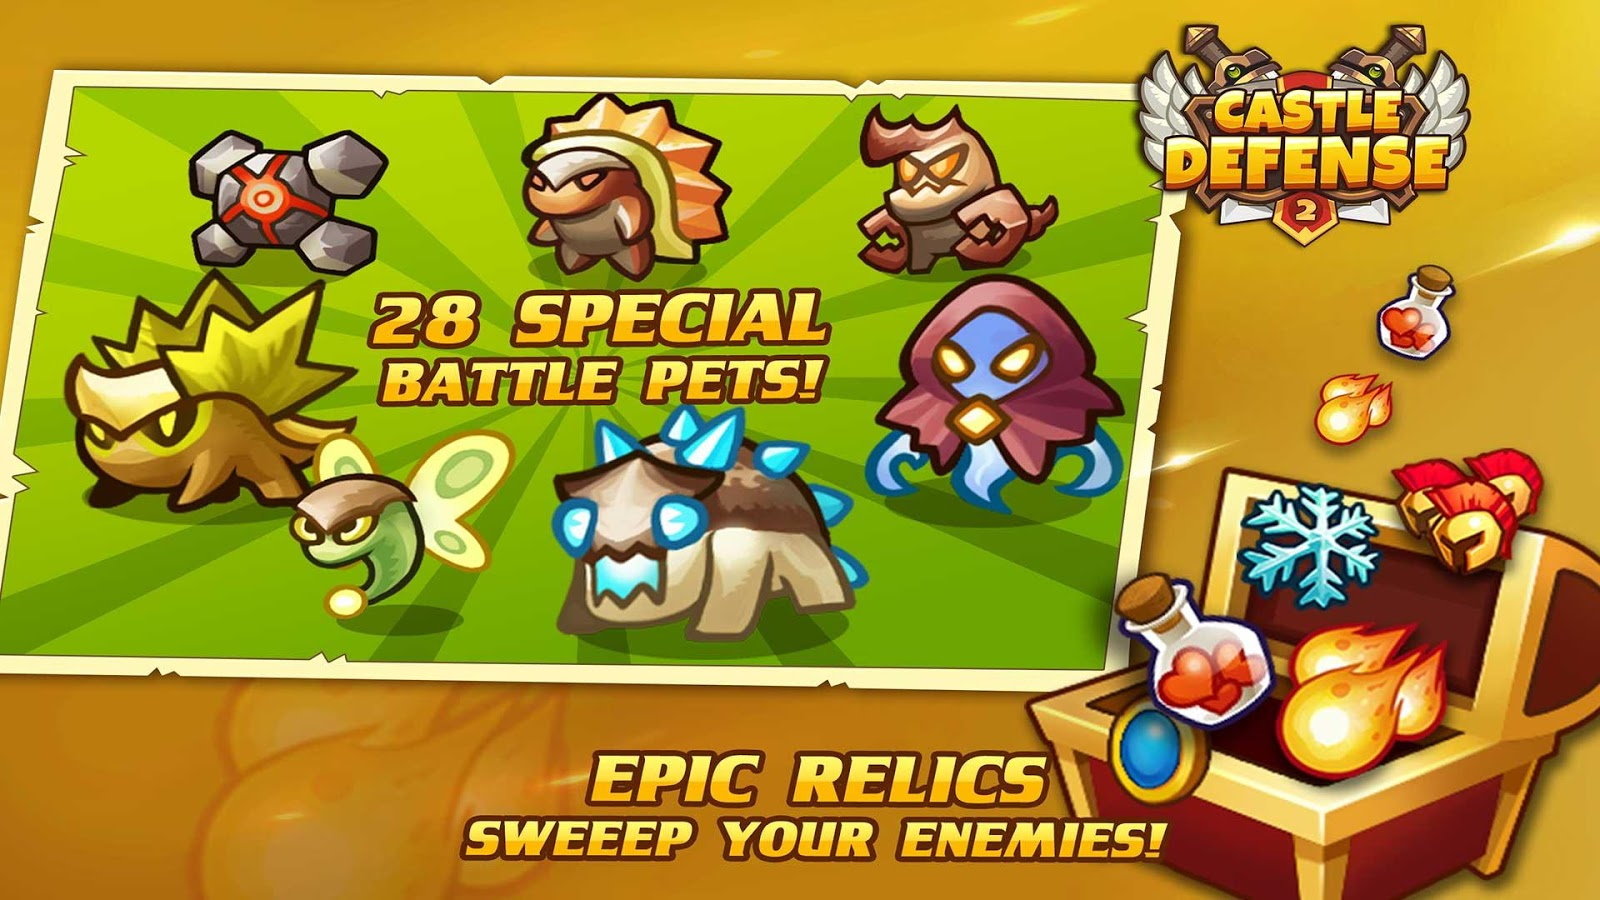 Castle TD 2: Nerubius Invasion 3 0 6 APK Download - Android Strategy